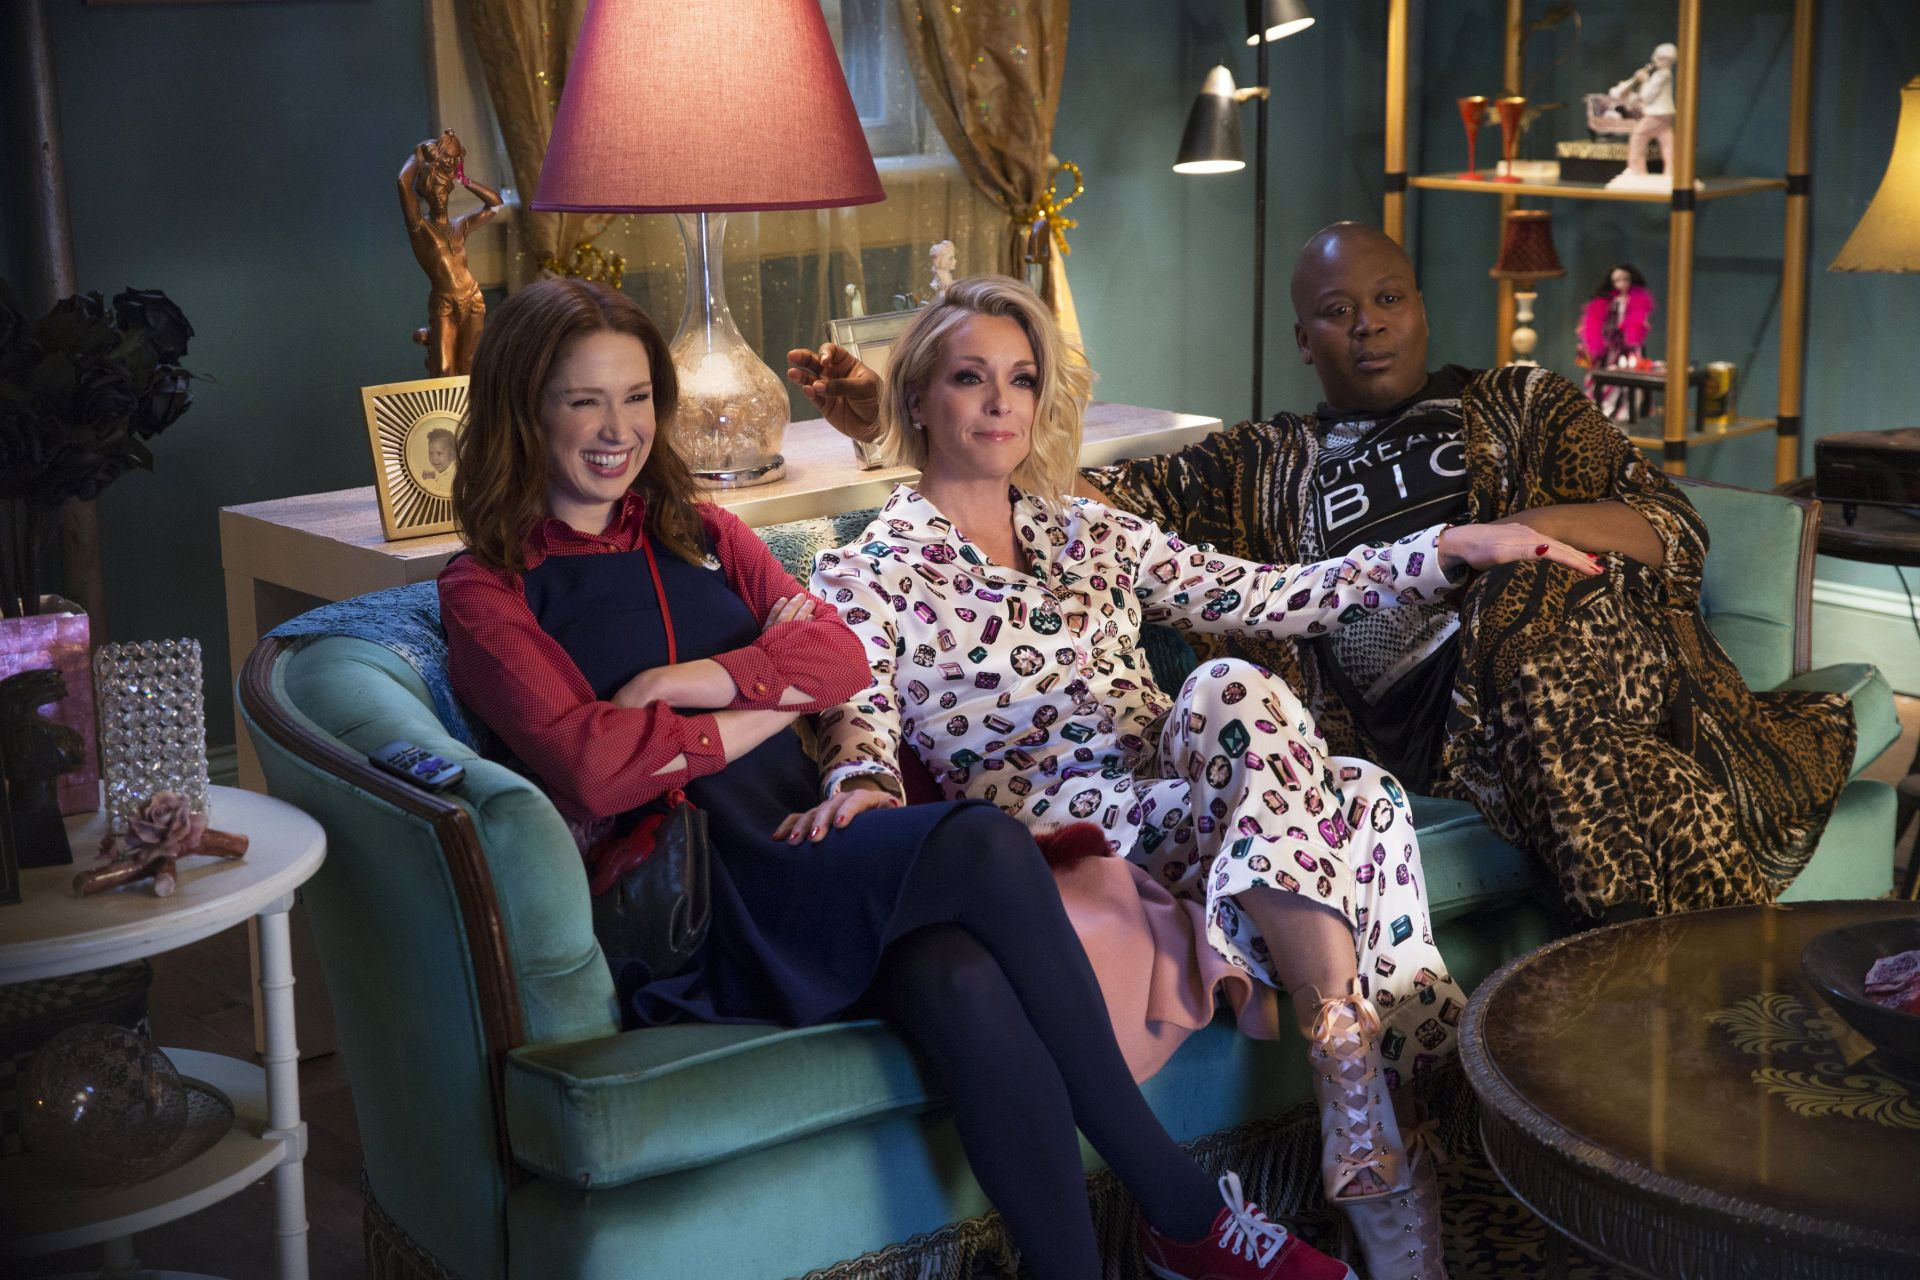 Amy Sedaris Kimmy Schmidt guest cast for season 4 of unbreakable kimmy schmidt